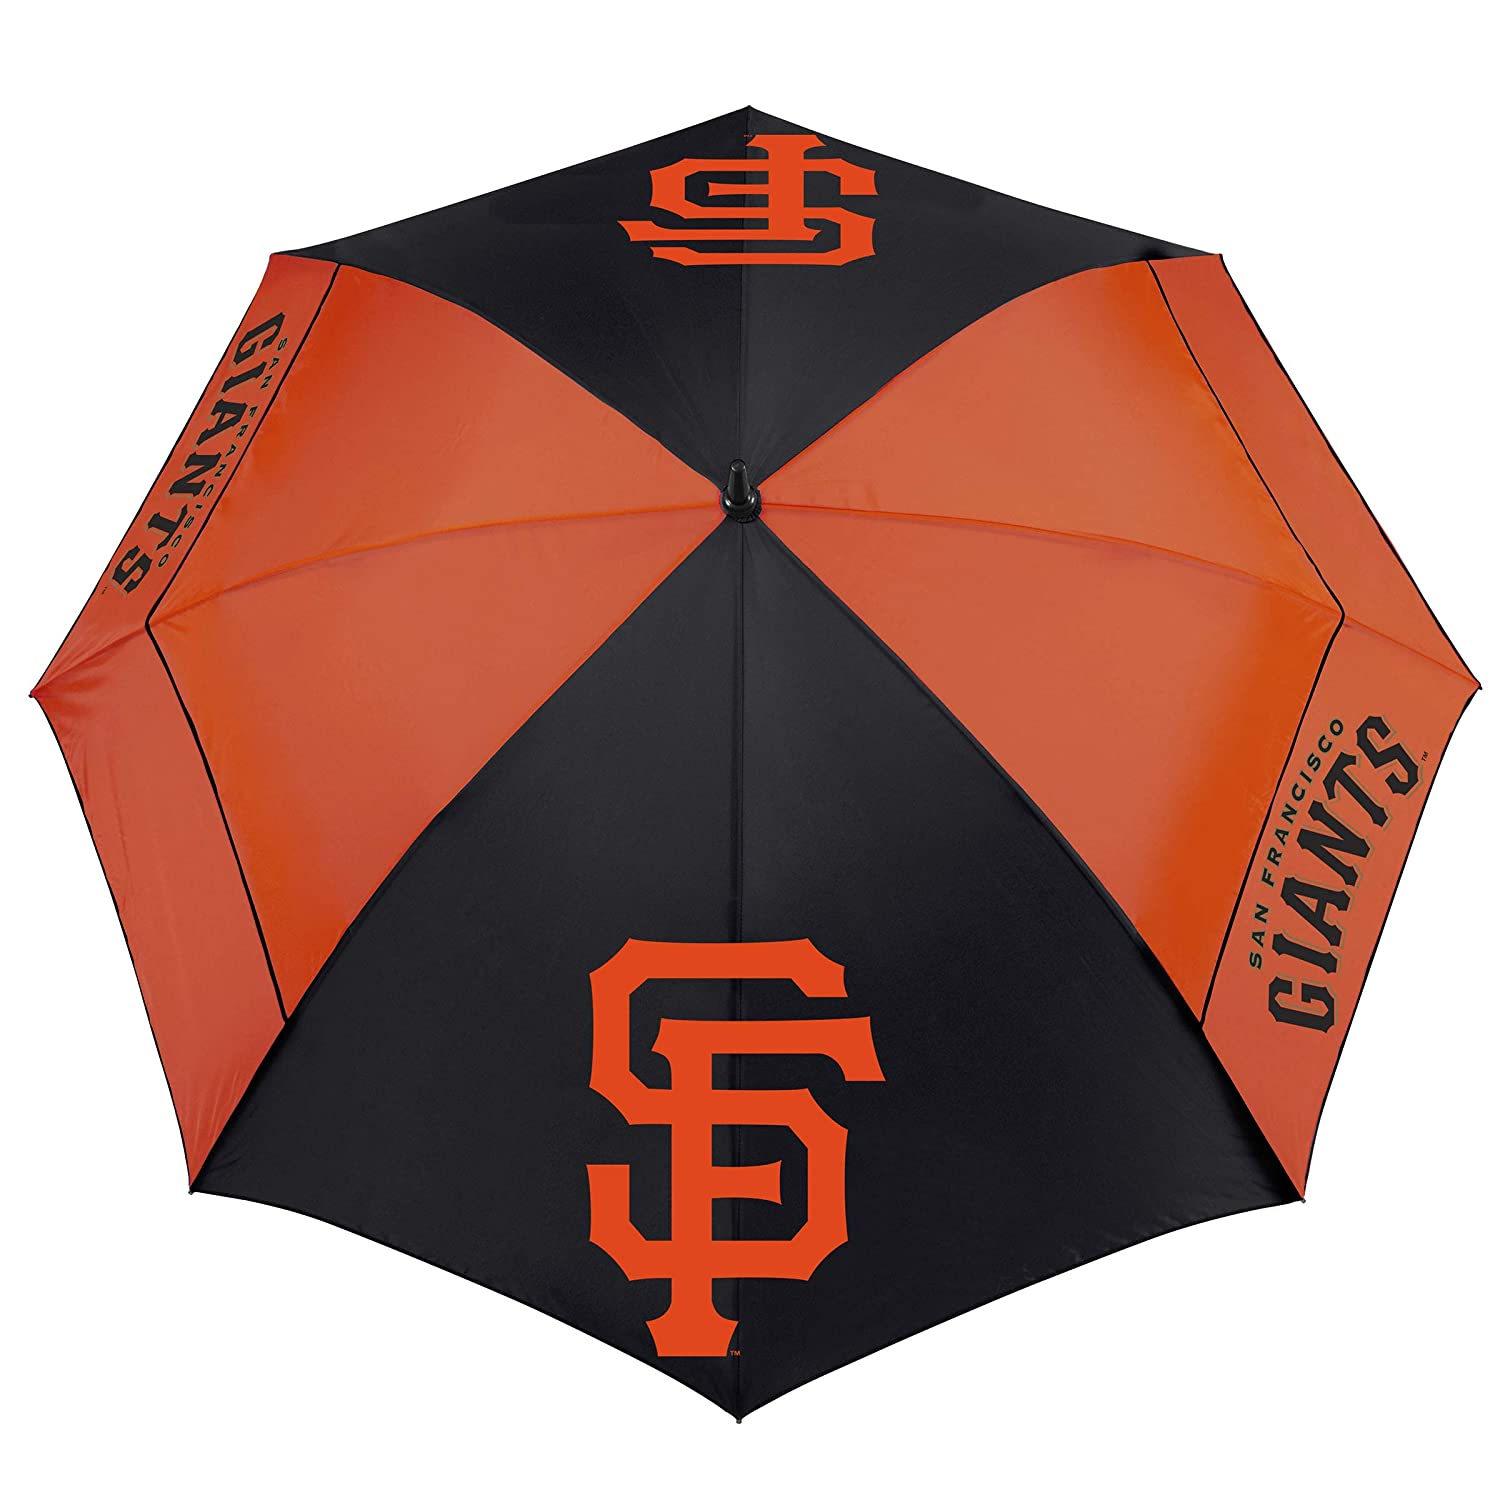 Windsheer Lite Windsheer Lite ゴルフ傘 マルチ ナゴルフ傘 マルチ NA San Francisco Giants San Francisco Giants B07G3KB3LN